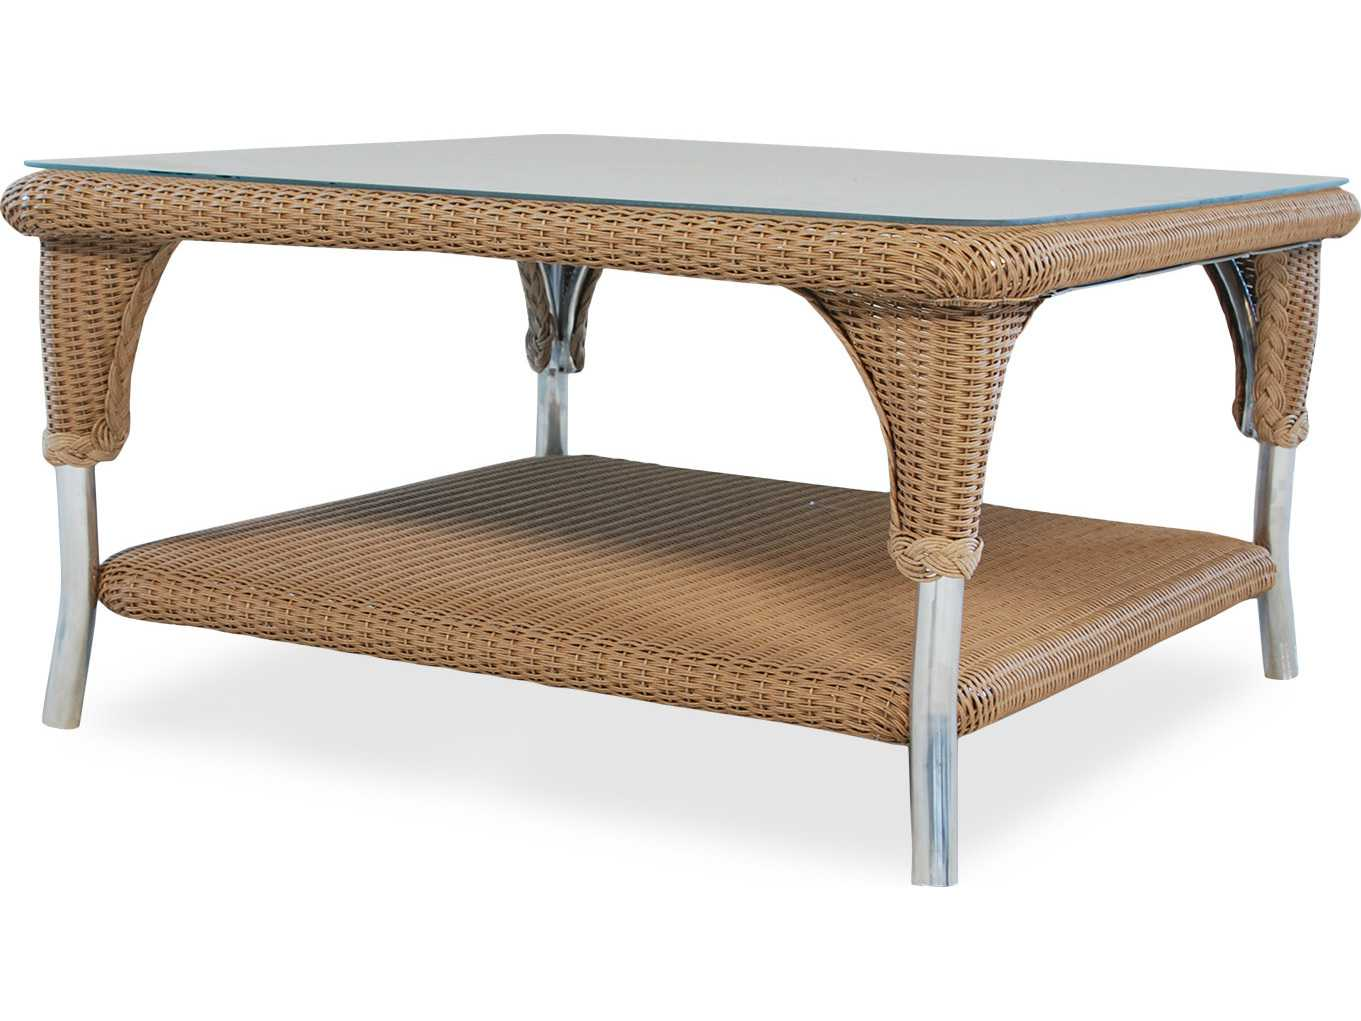 Lloyd Flanders Wicker 35 39 39 Square Coffee Table 86244